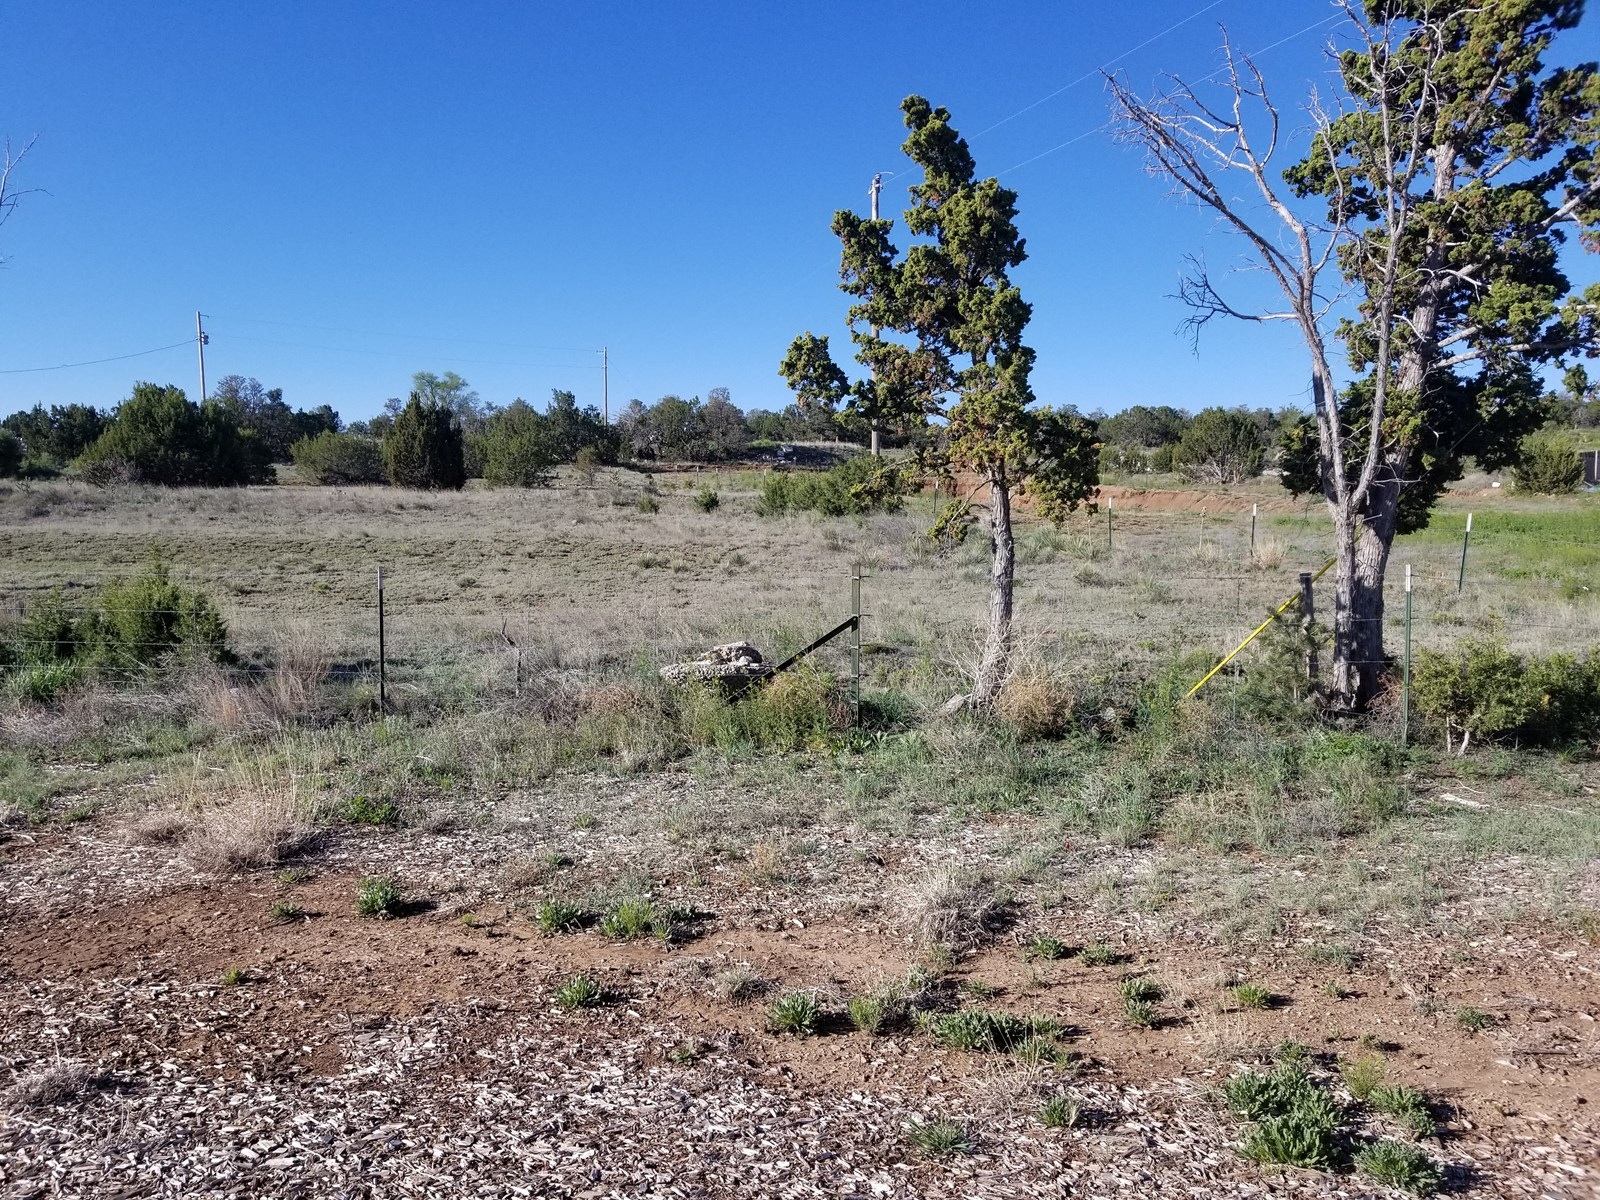 Edgewood NM Commercial Land Investment Property For Sale